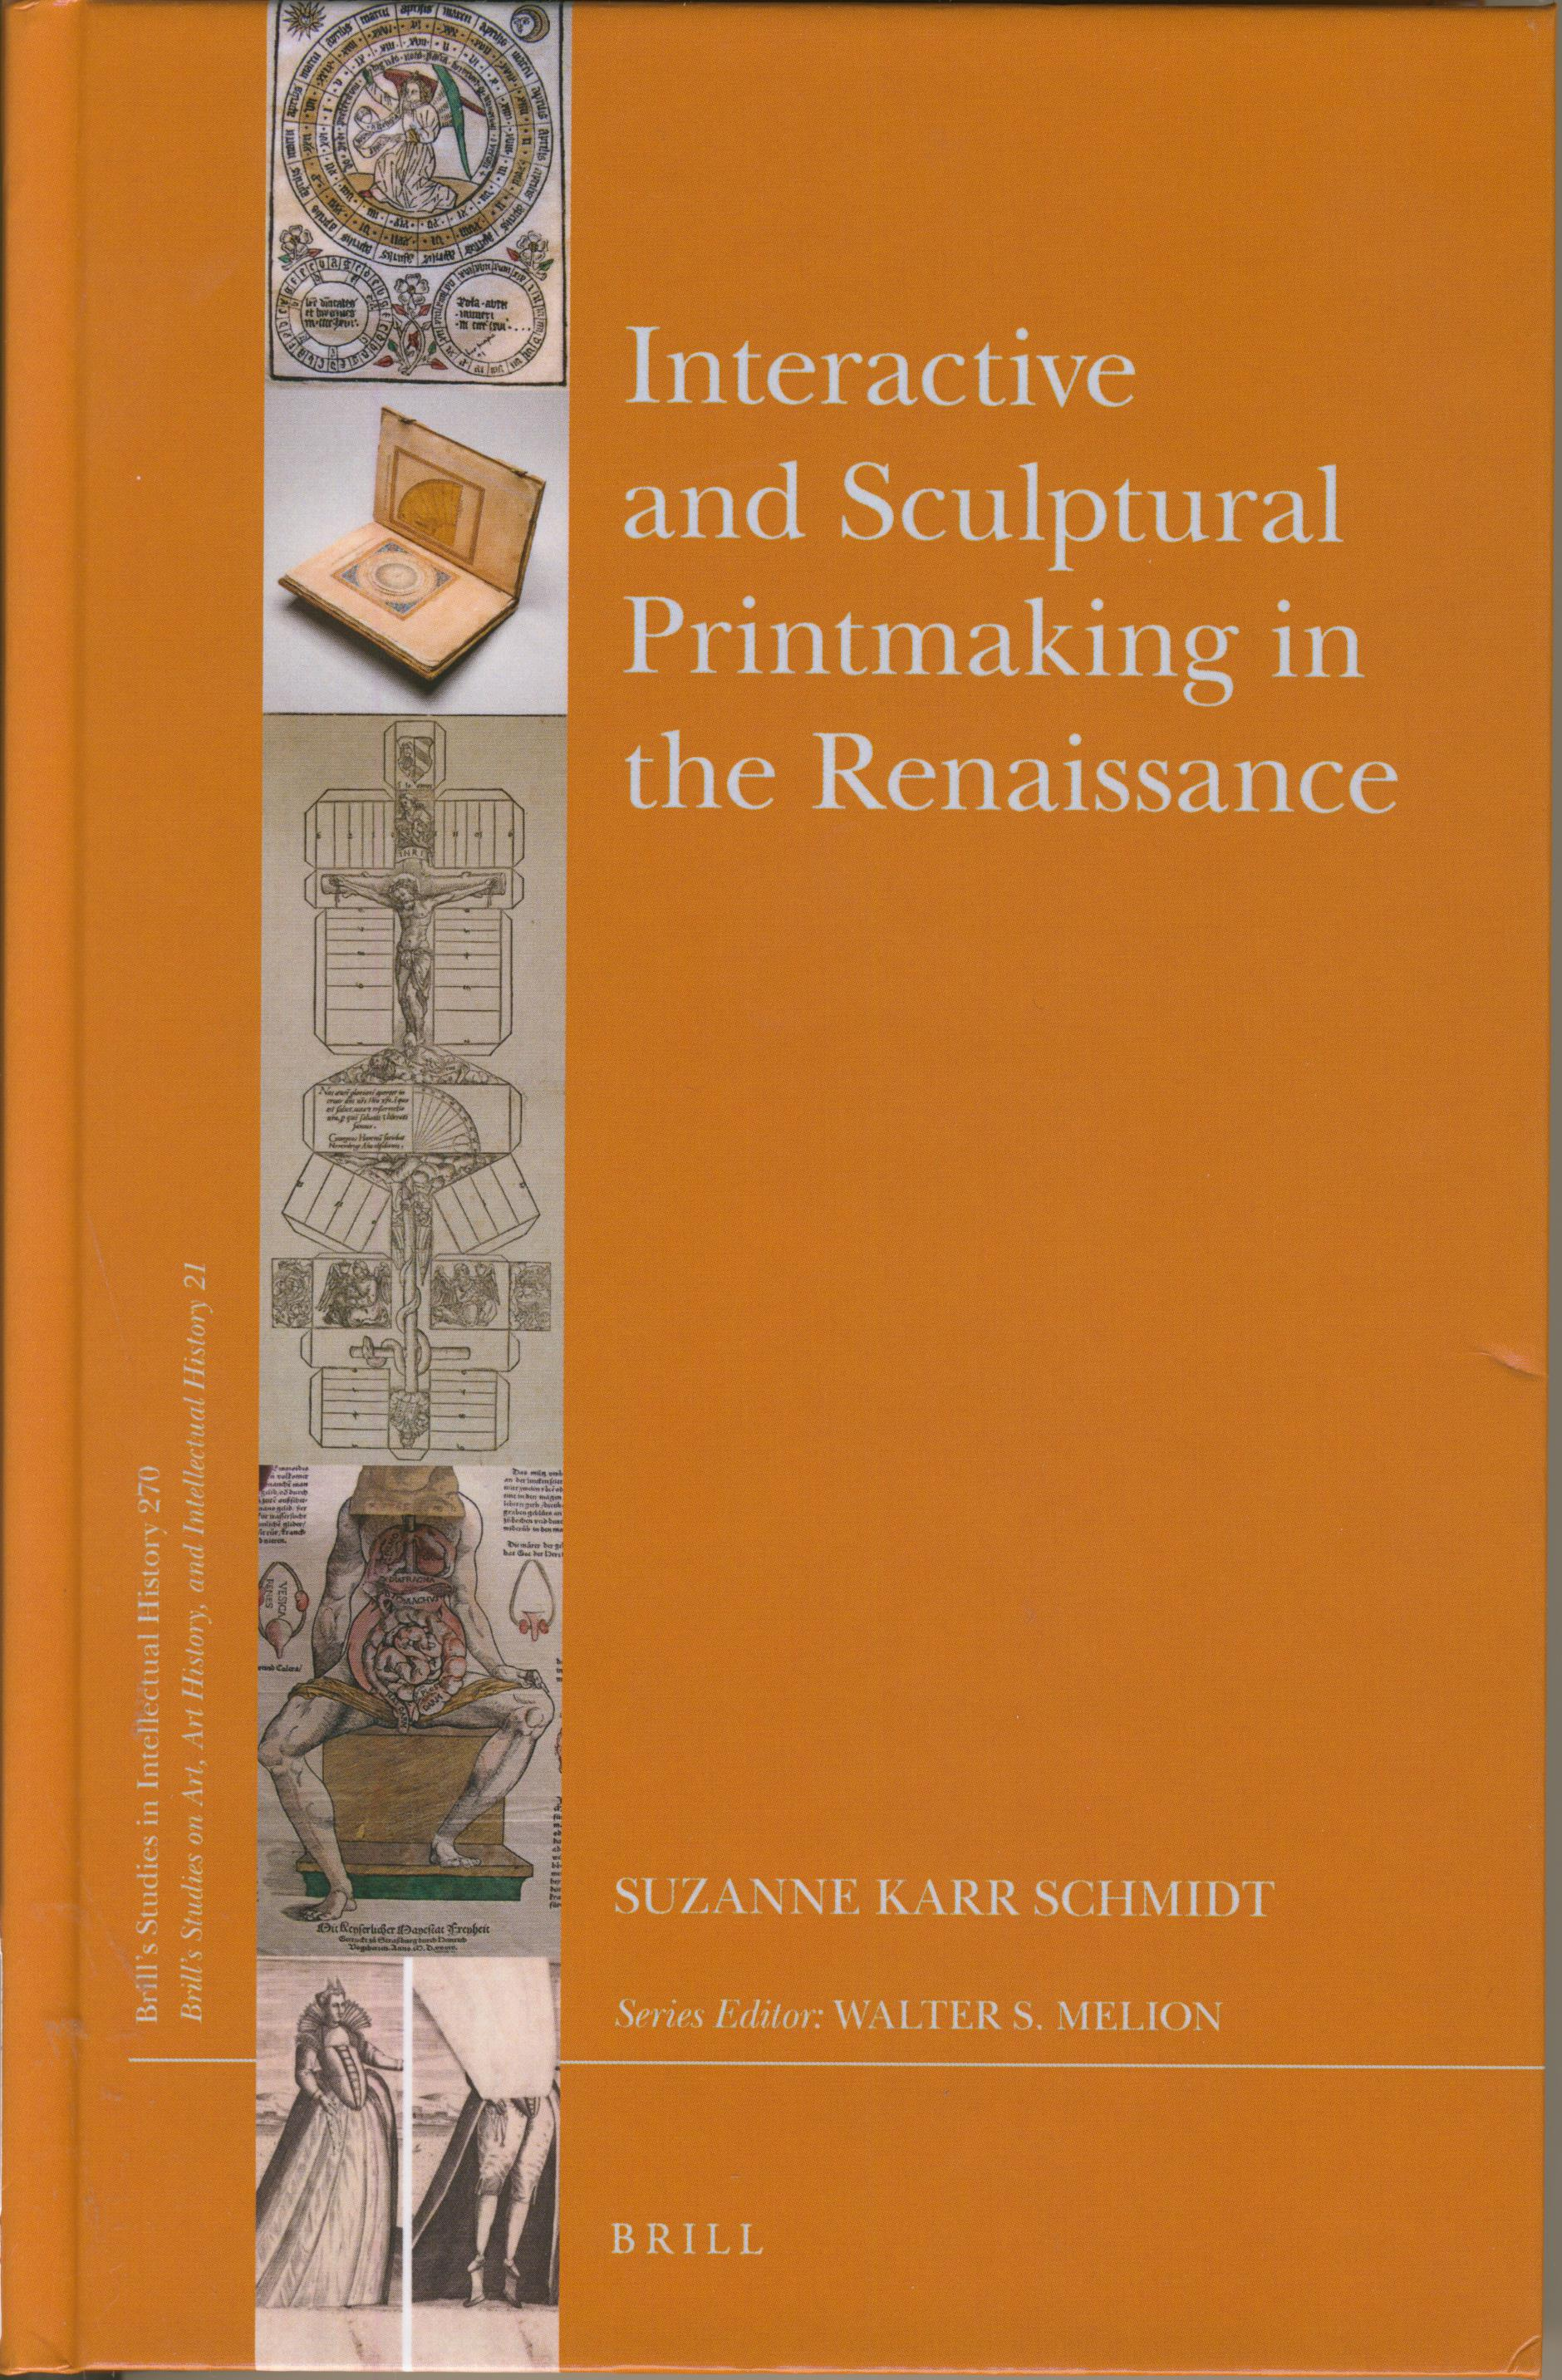 Interactive and sculptural printmaking in the Renaissance